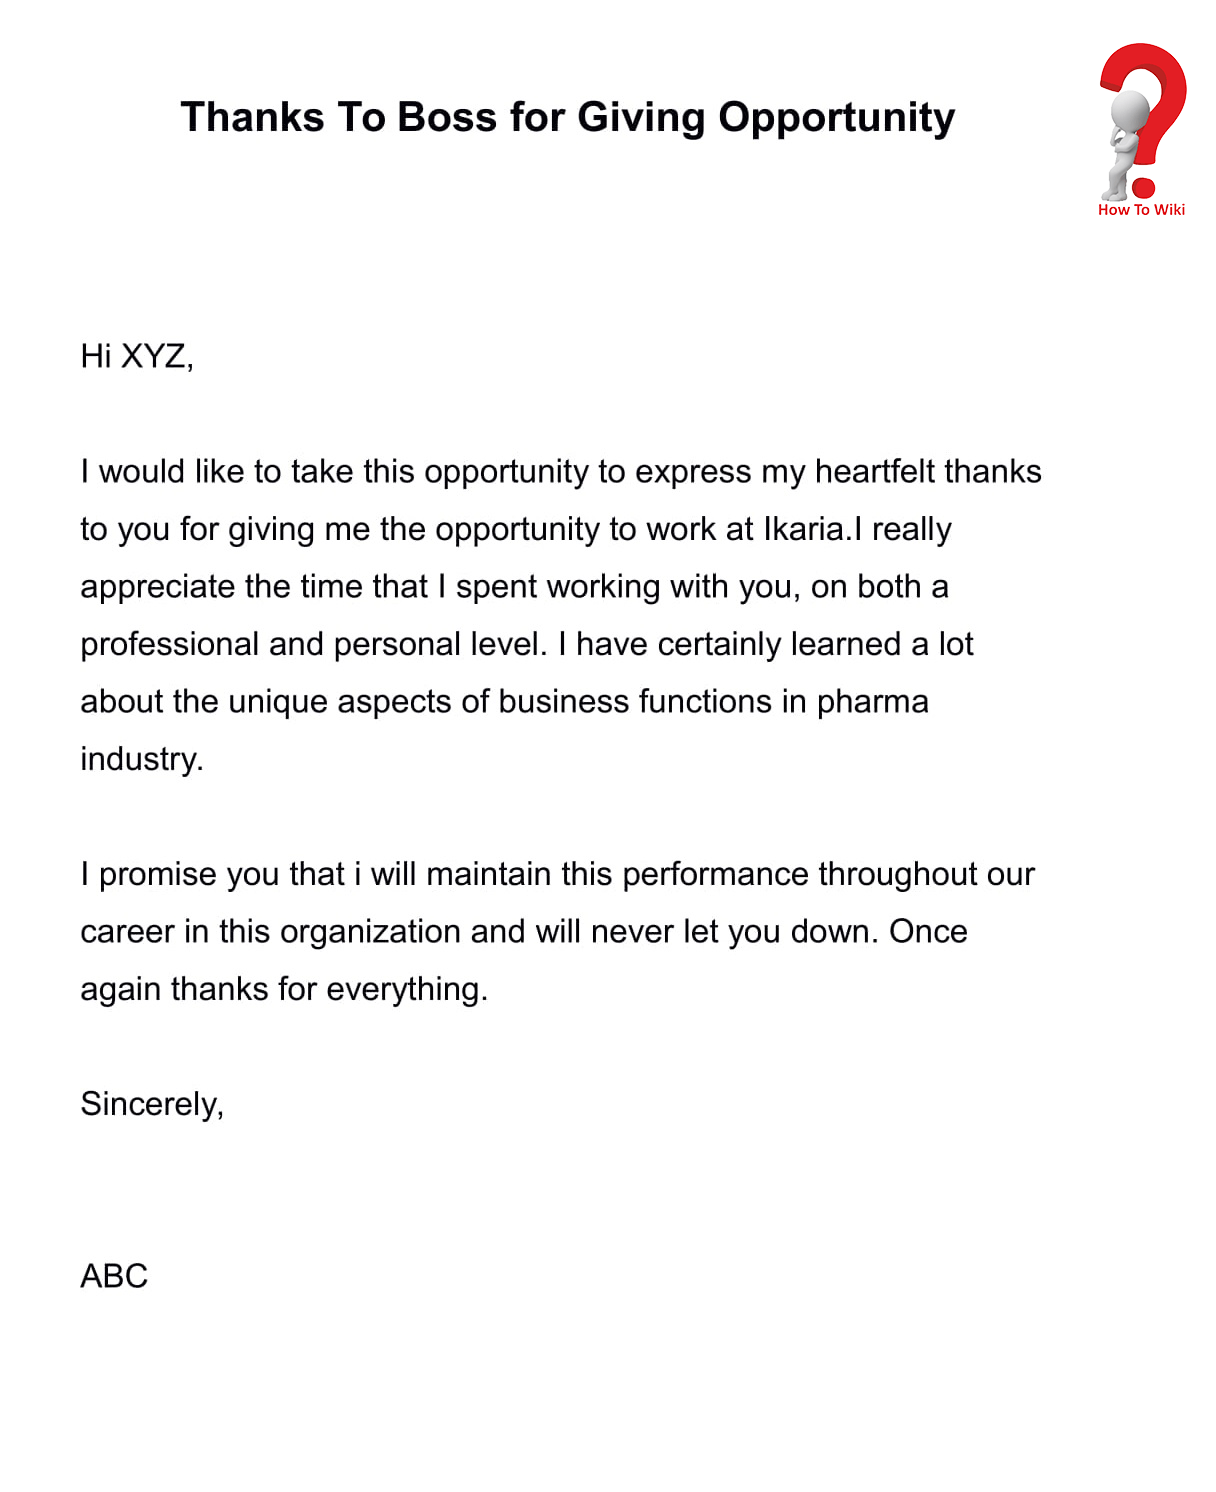 Thank you letter to boss for opportunity